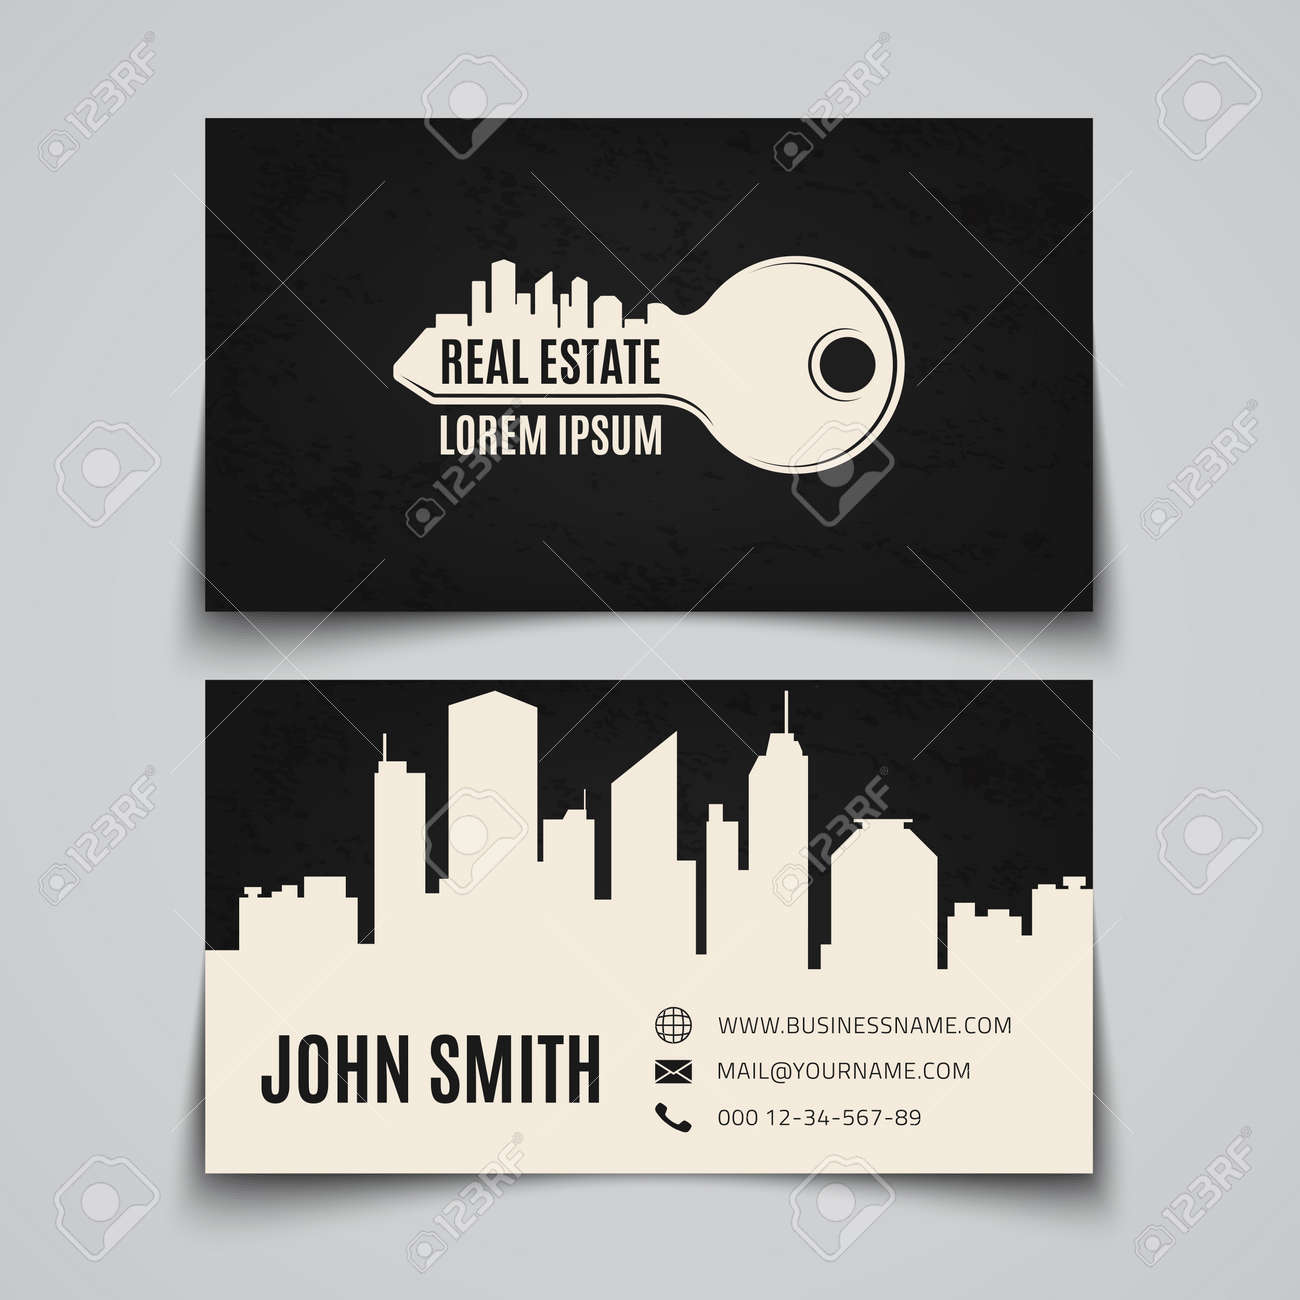 Real estate simple key logo business card template vector real estate simple key logo business card template vector illustration stock vector reheart Images